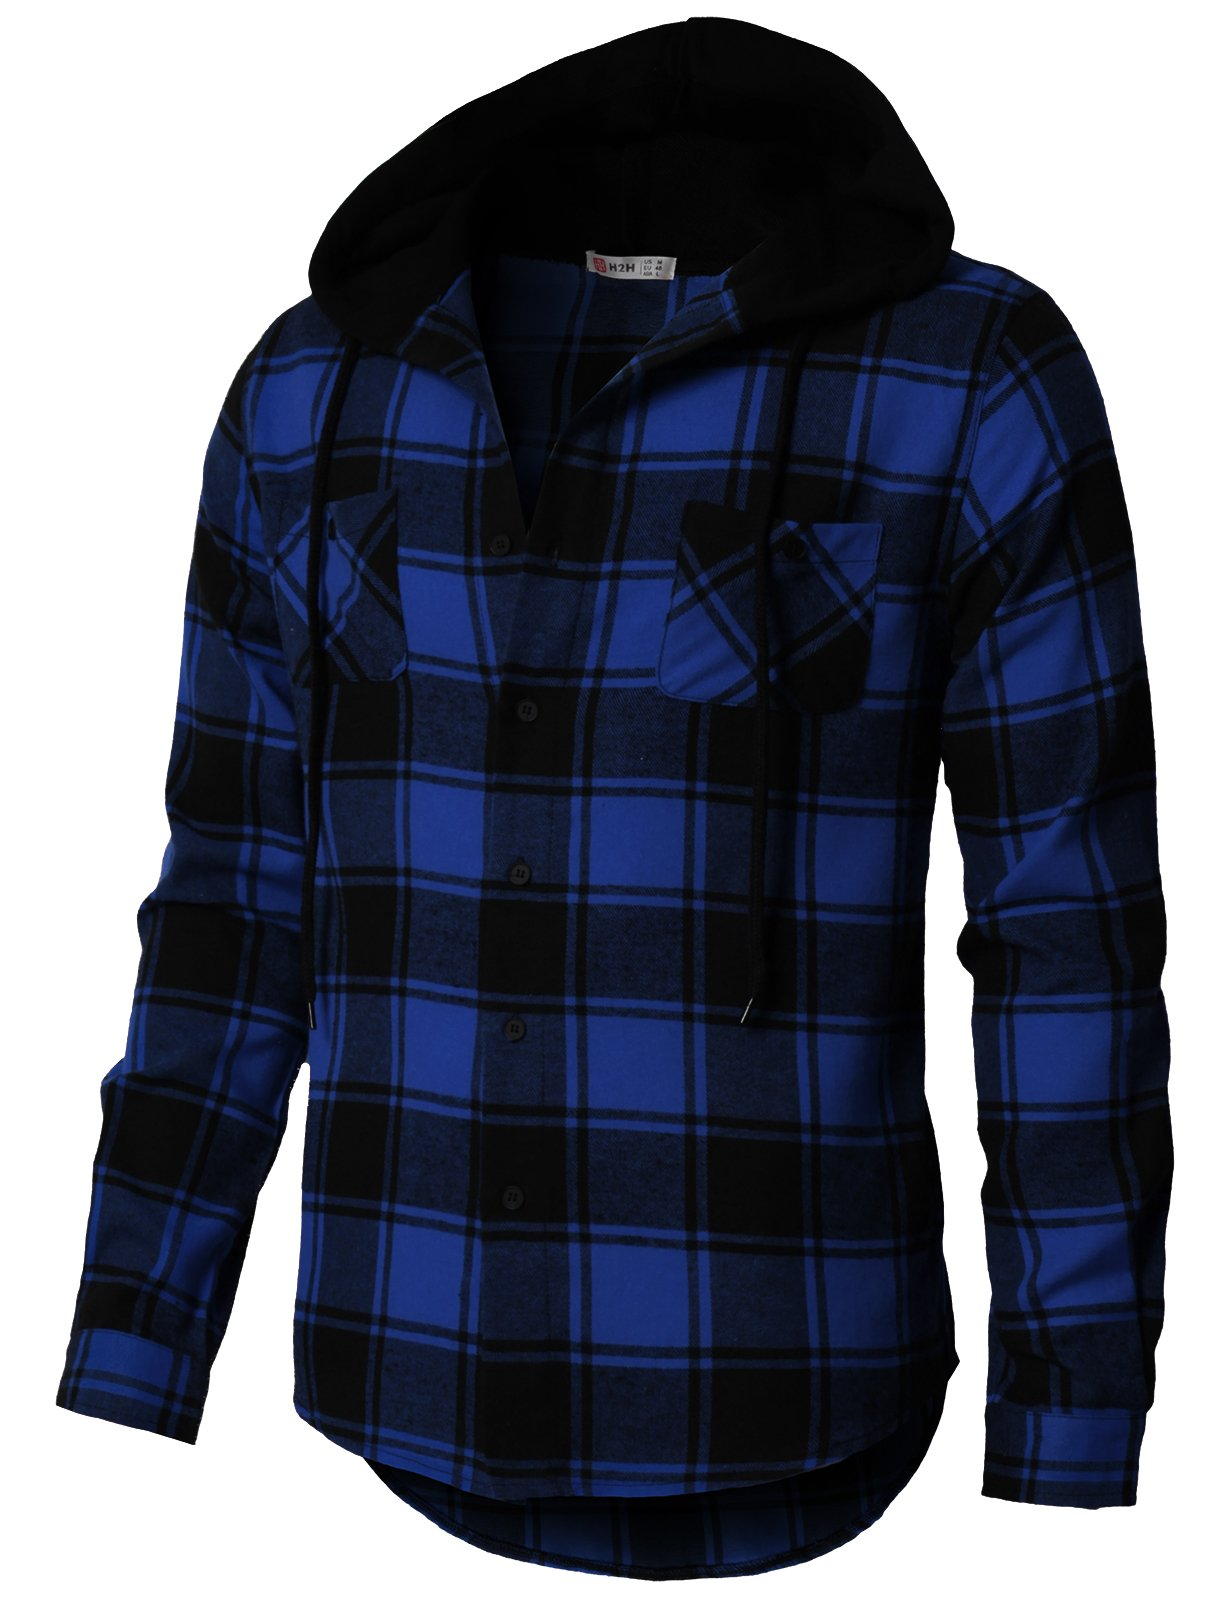 H2H Men's Long Sleeve Button Down Cotton Plaid Casual Shirts Hoodie Jacket Blue US L/Asia XL (CMOJA0105)